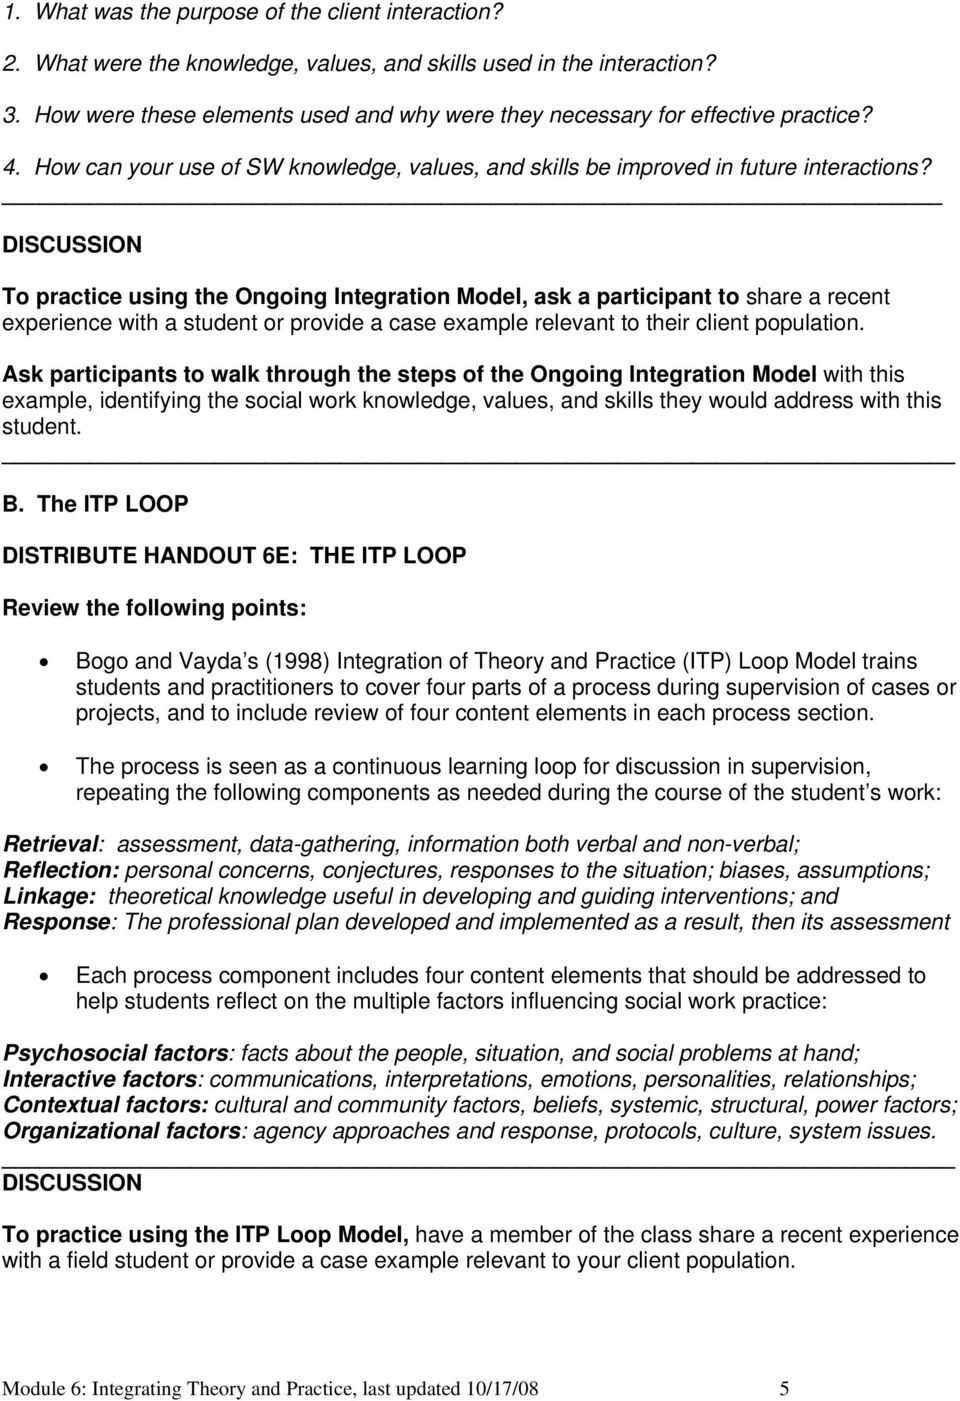 MODULE 6: INTEGRATING THEORY AND PRACTICE: OUTLINE - PDF